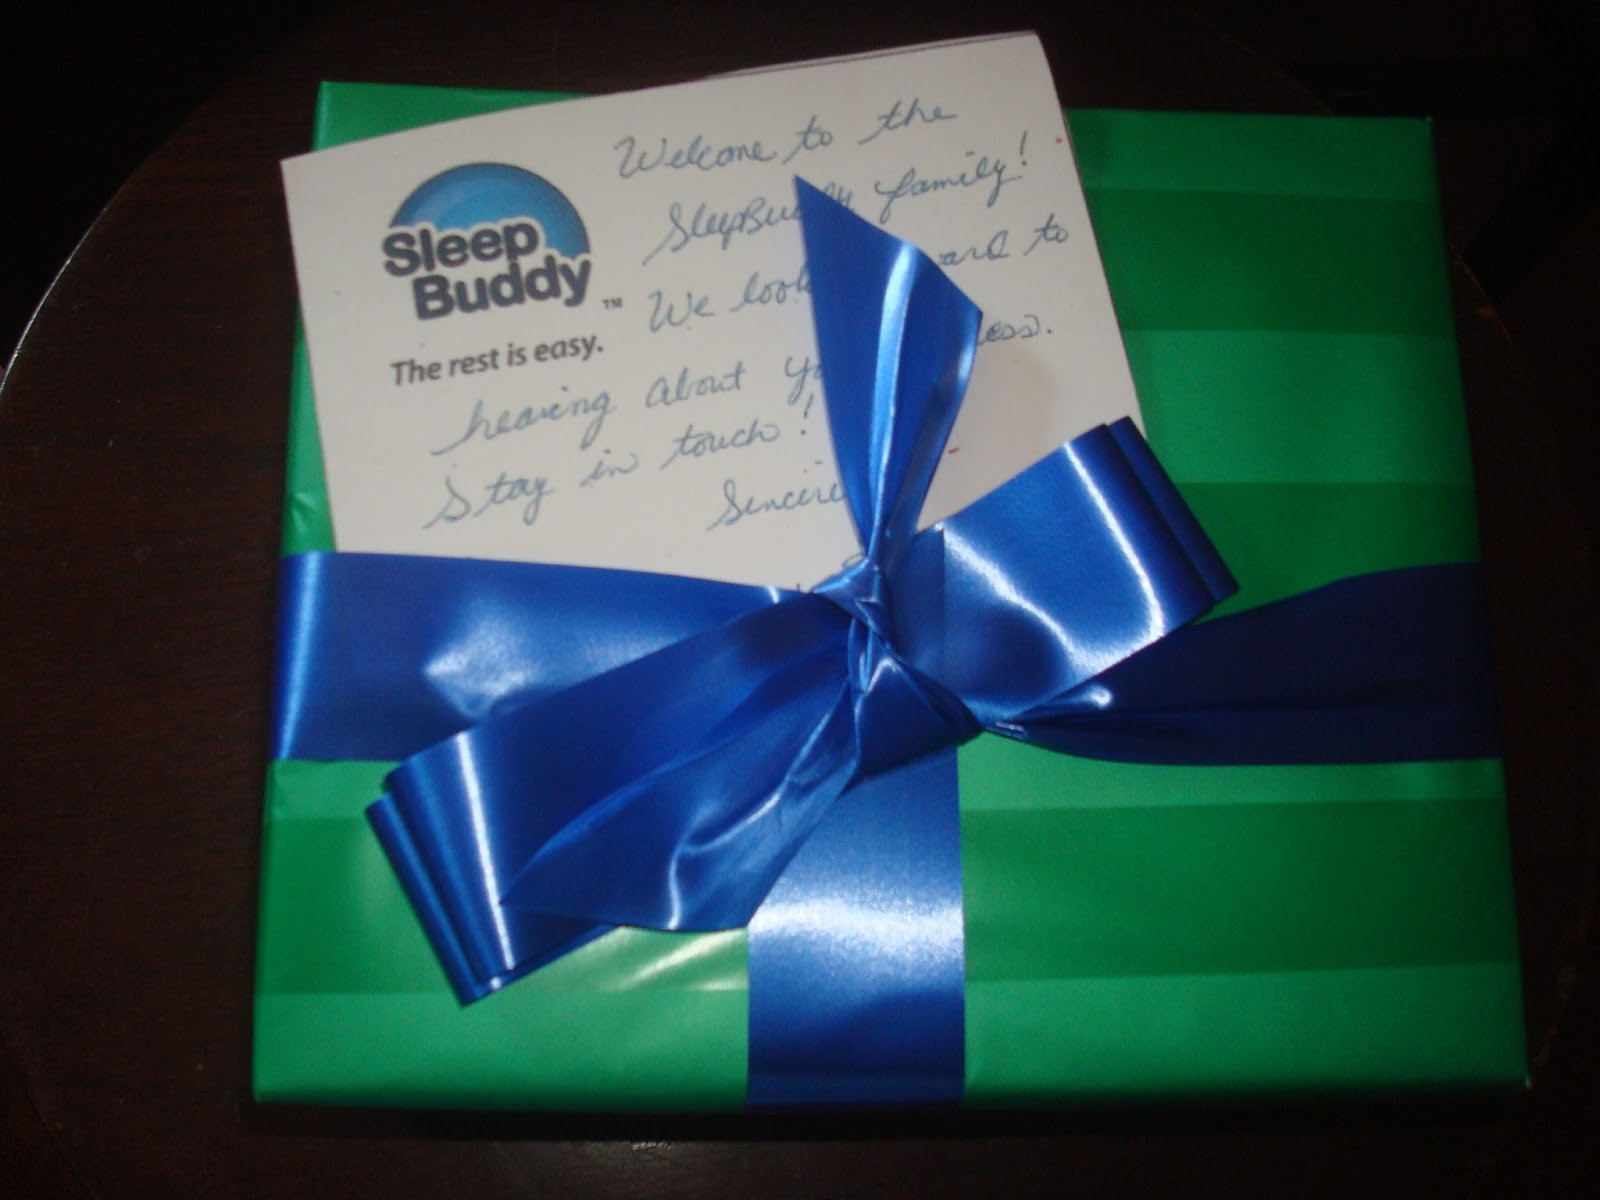 Mommy Blog Sleep Buddy Trainer A Little Letter From The Owner Welcoming Us To Sleepbuddy Family